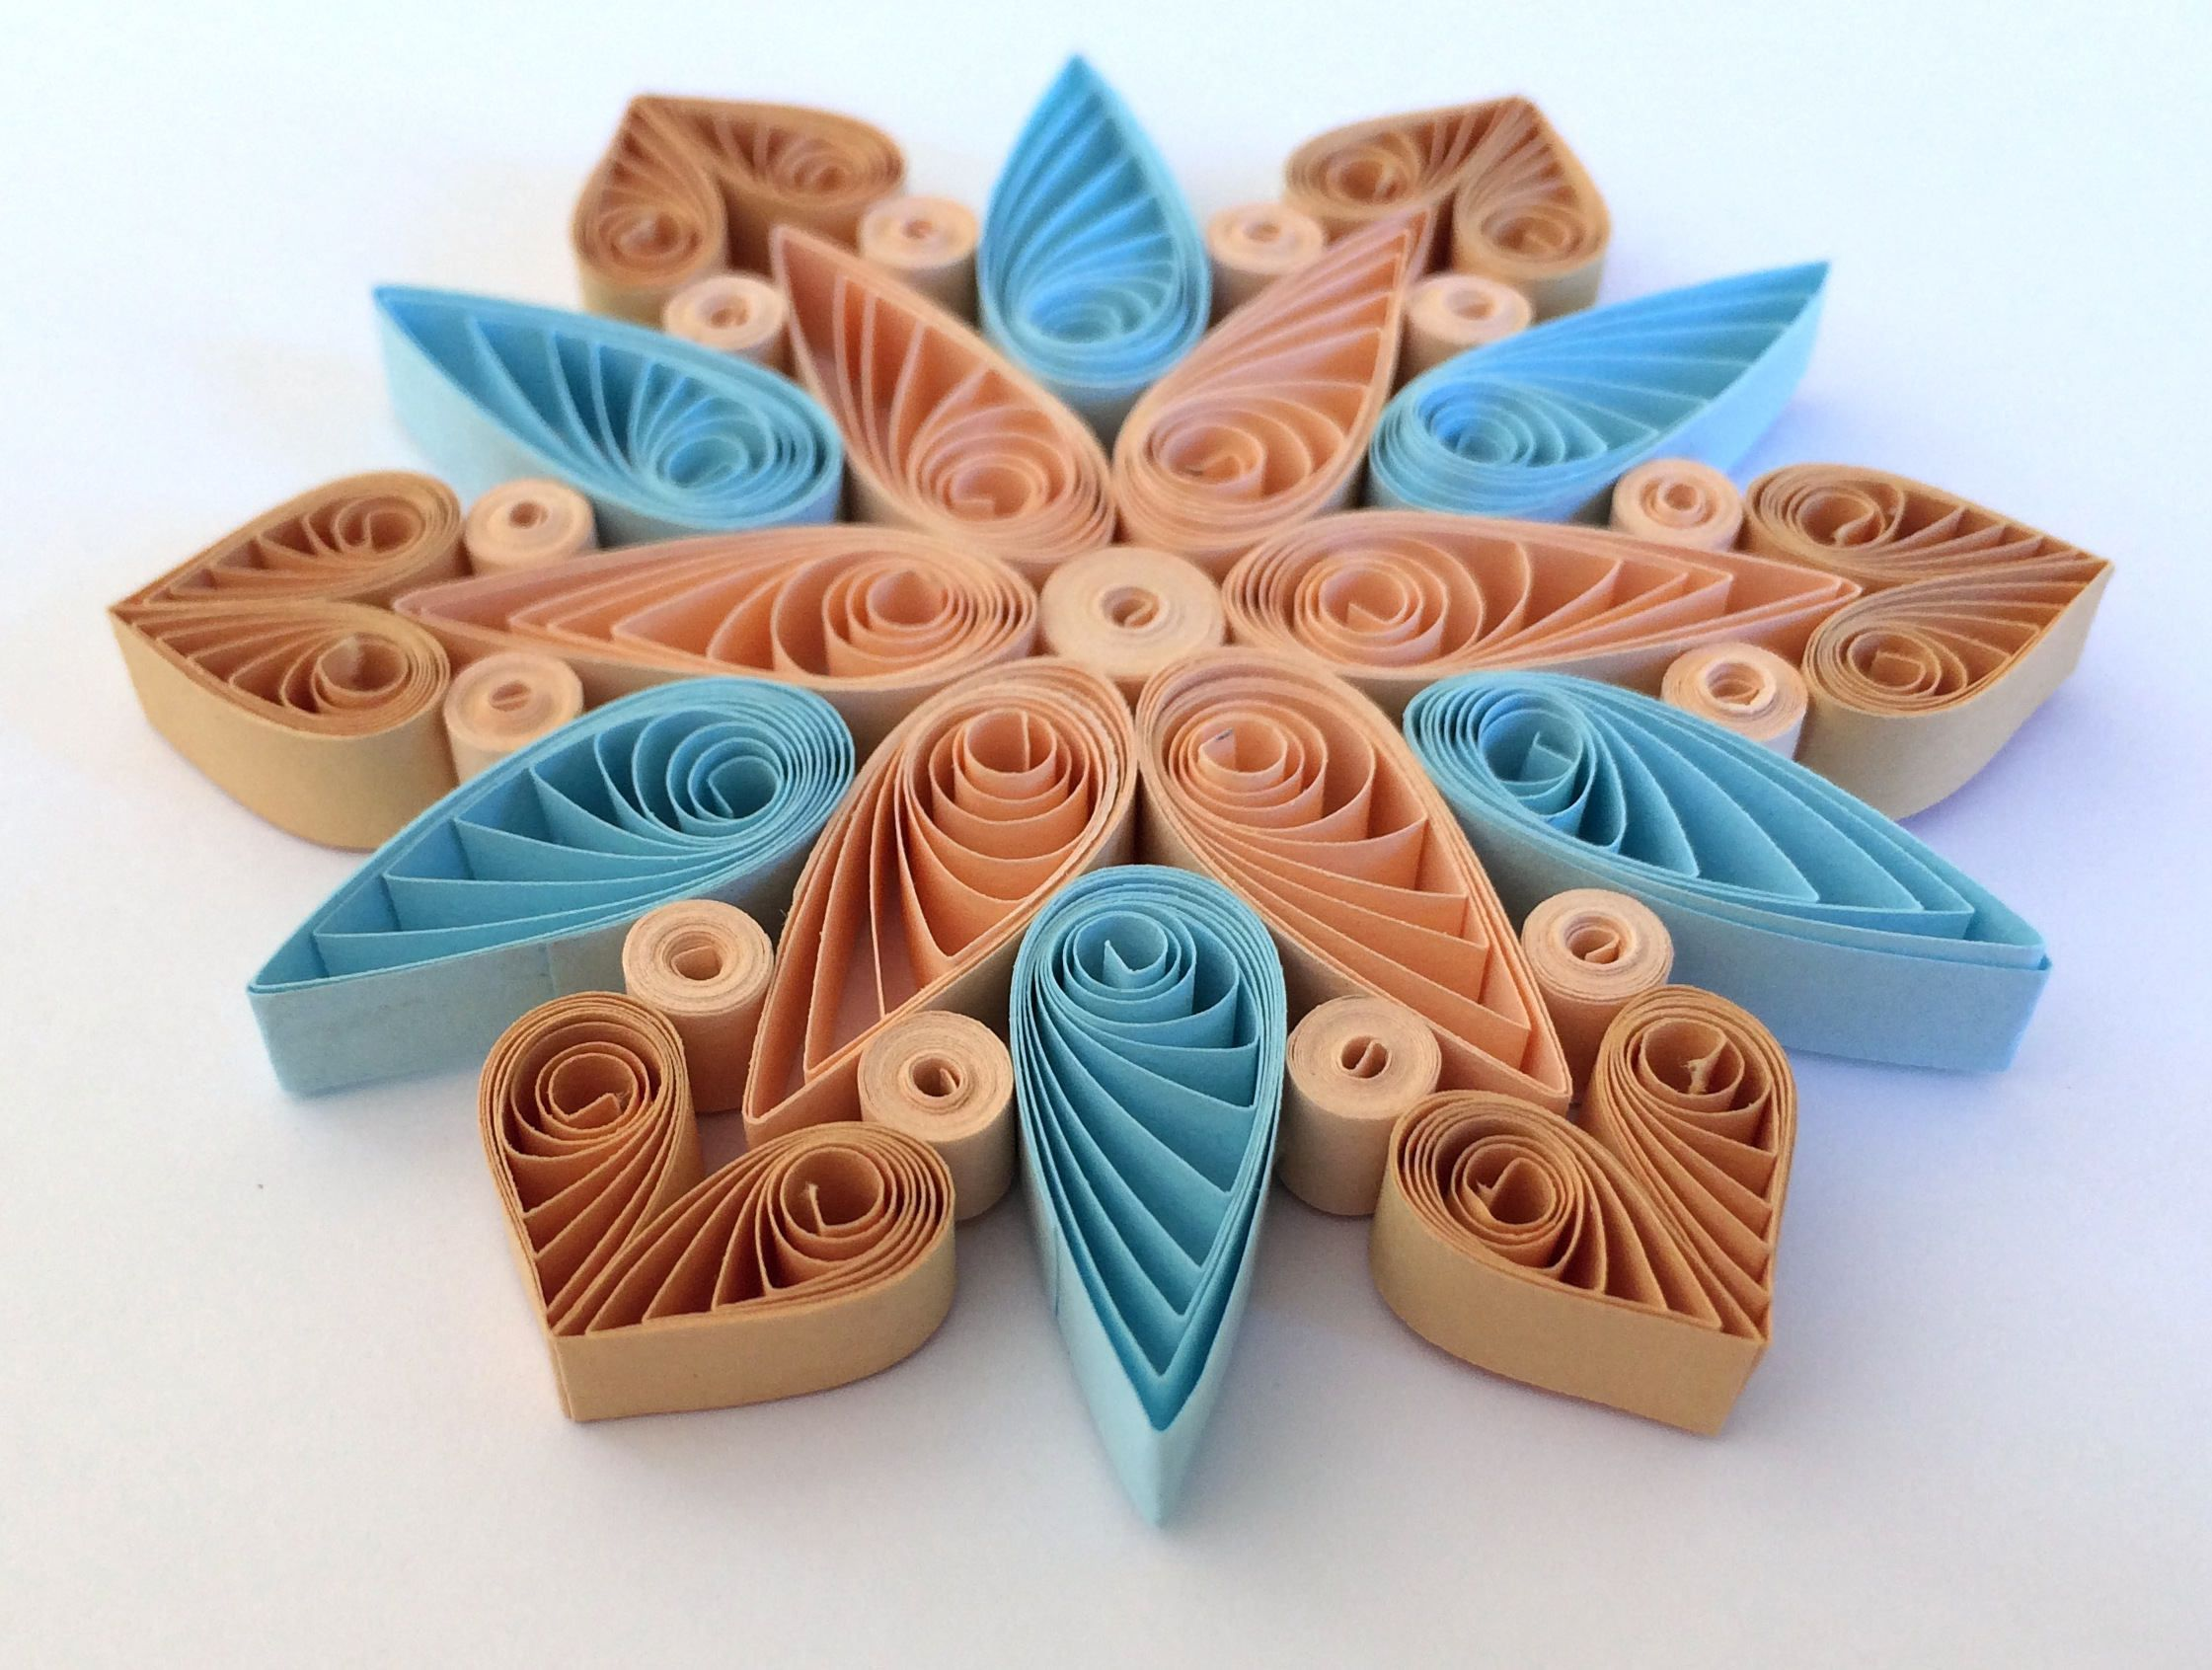 Snowflake Beige Blue, Quilled Handmade Art, Paper Quilling, Home Decoration